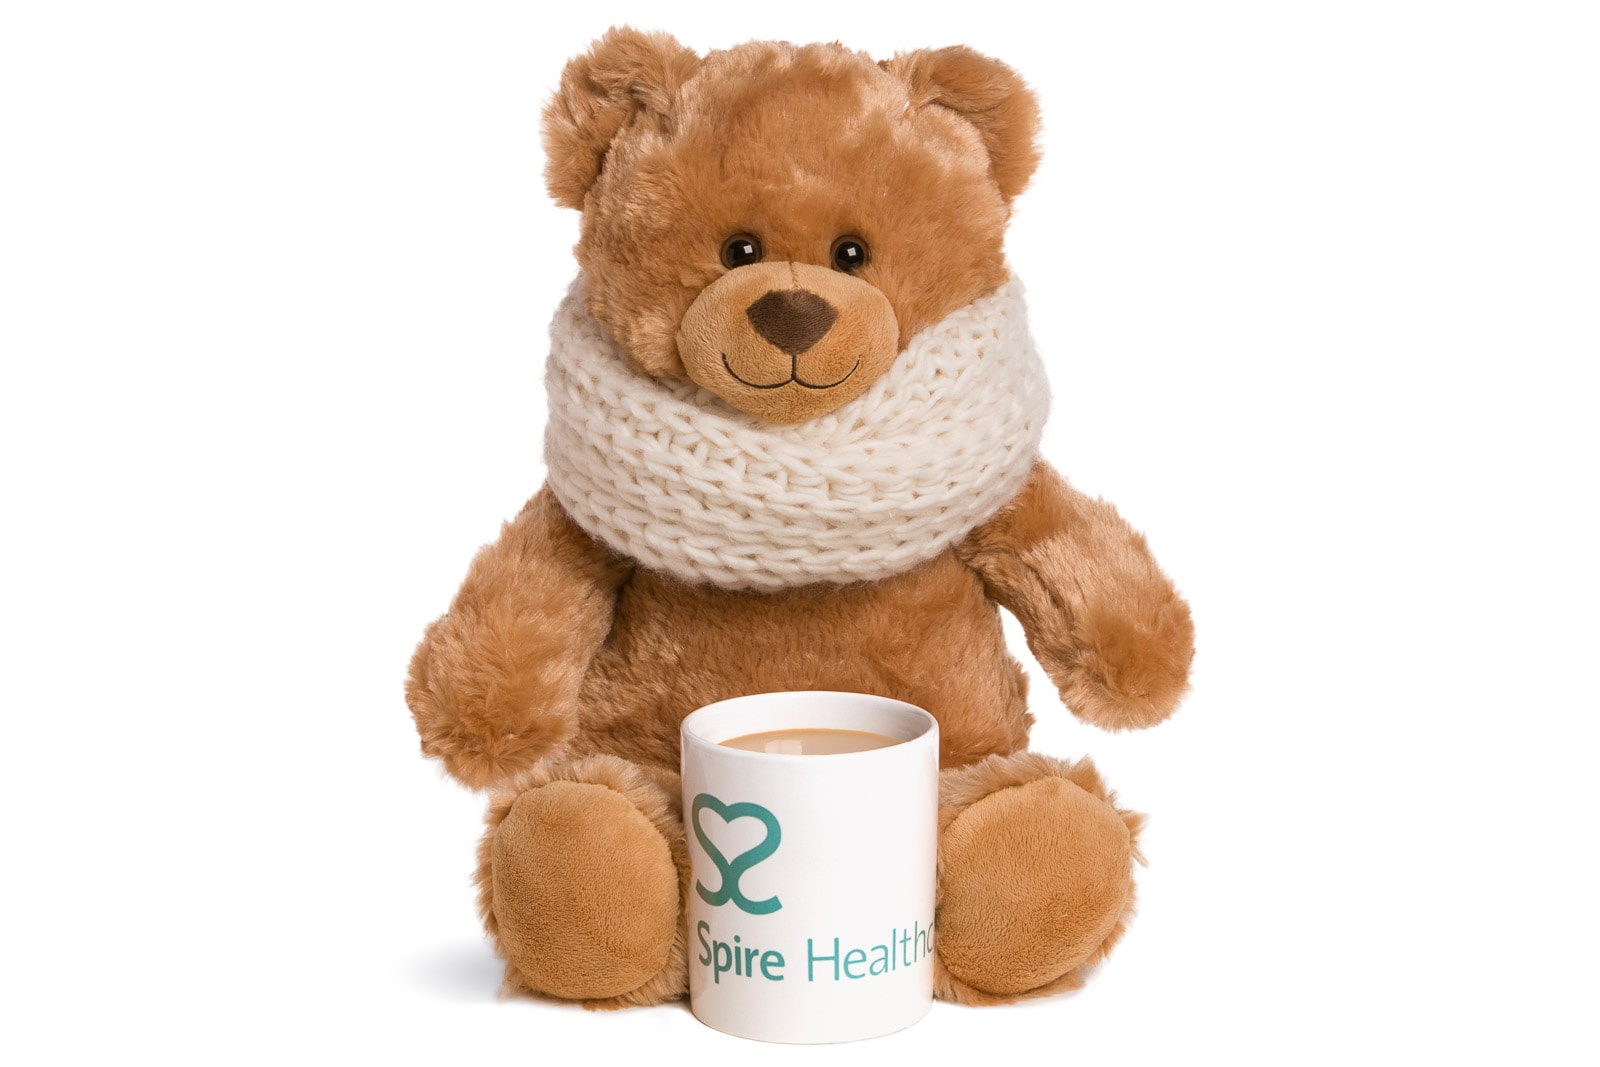 spire healthcare campaign teddy bear product on white background